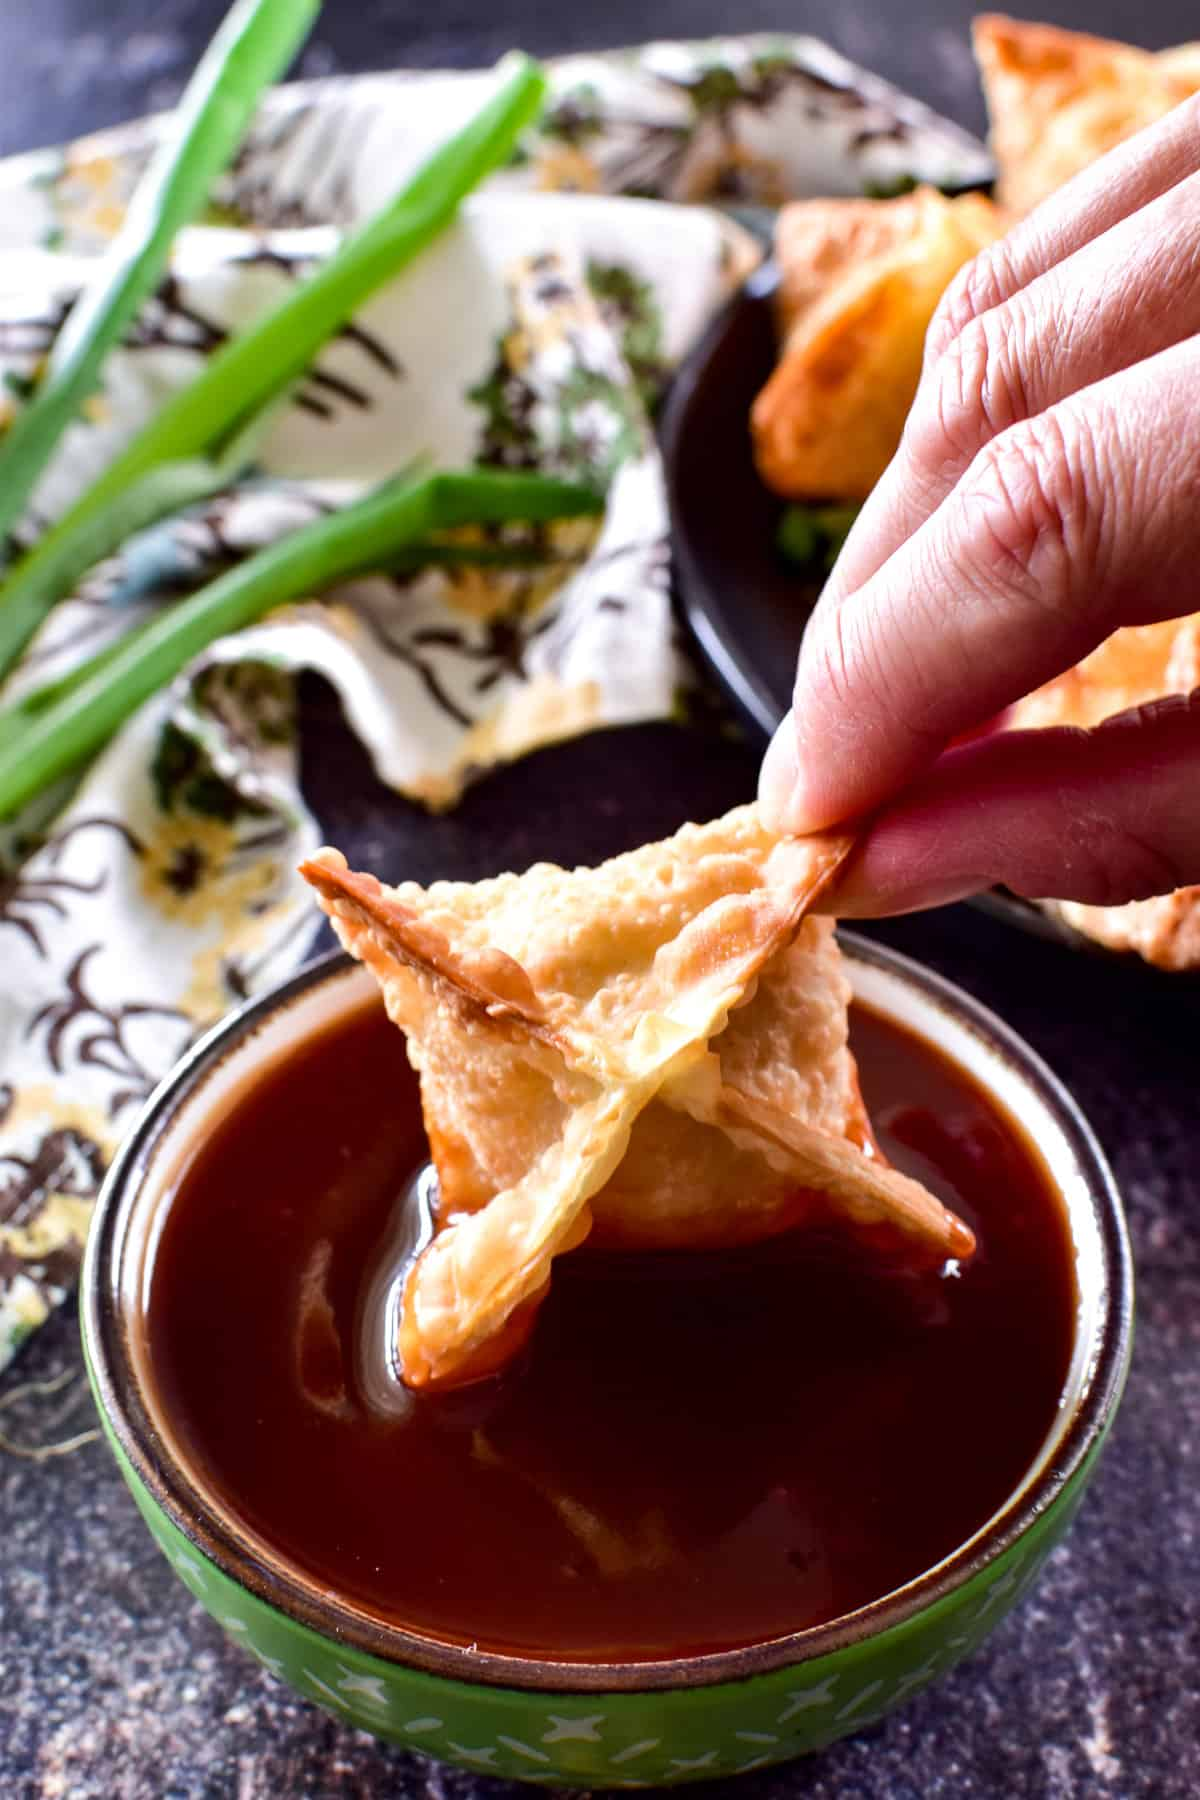 Crab Rangoon being dipped into sweet & sour sauce